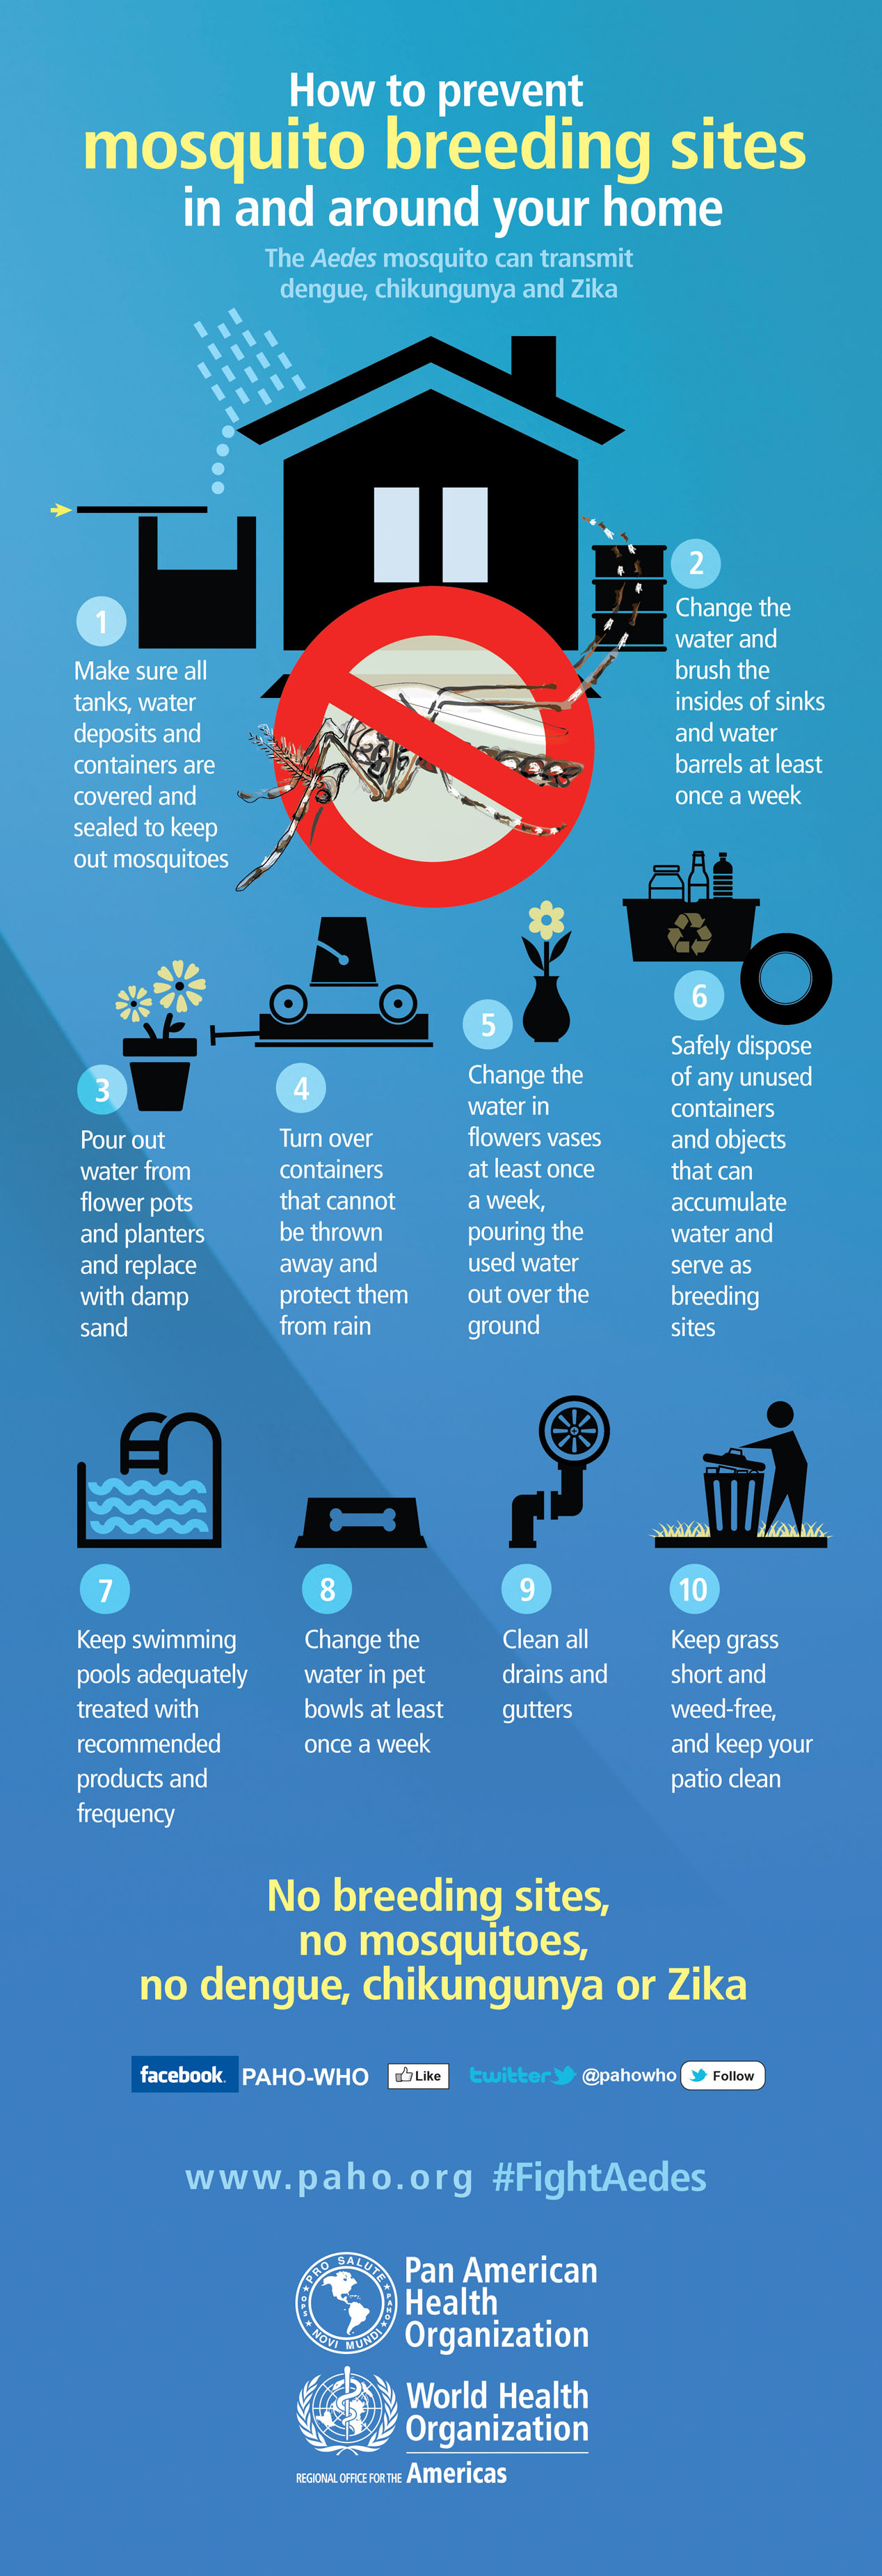 Infographic from Pan American Health organization and the World Health Organization is titled: How to prevent mosquito breeding sites in and around your home. The Aedes mosquito can transmit Dengue, Chikungunya and Zika. An illustration of a house is followed by other illustrations that match the text as you scroll down, which reads: 1. Make sure all tanks, water deposits and containers are covered and sealed to keep out mosquitoes. 2. Change the water and brush the insides of sinks and water barrels at least once a week. 3. pour out water from flower pots and planters and replace with damp sand. 4. Turn over containers that cannot be thrown away and protect them from rain. 5. Change the water in flower vases at least once a week, pouring the used water out over the ground. 6. Safely dispose of any unused containers and objects that can accumulate water and serve as breeding sites. 7. Keep swimming pools adequately treated with recommended products and frequency. 8. Change the water in pet bowls at least once a week. 9. Clean all drains and gutters. 10. Keep grass short and weed-free and keep your patio clean. No breeding sites, no mosquitoes, no Dengue, Chikungunya or Zika.